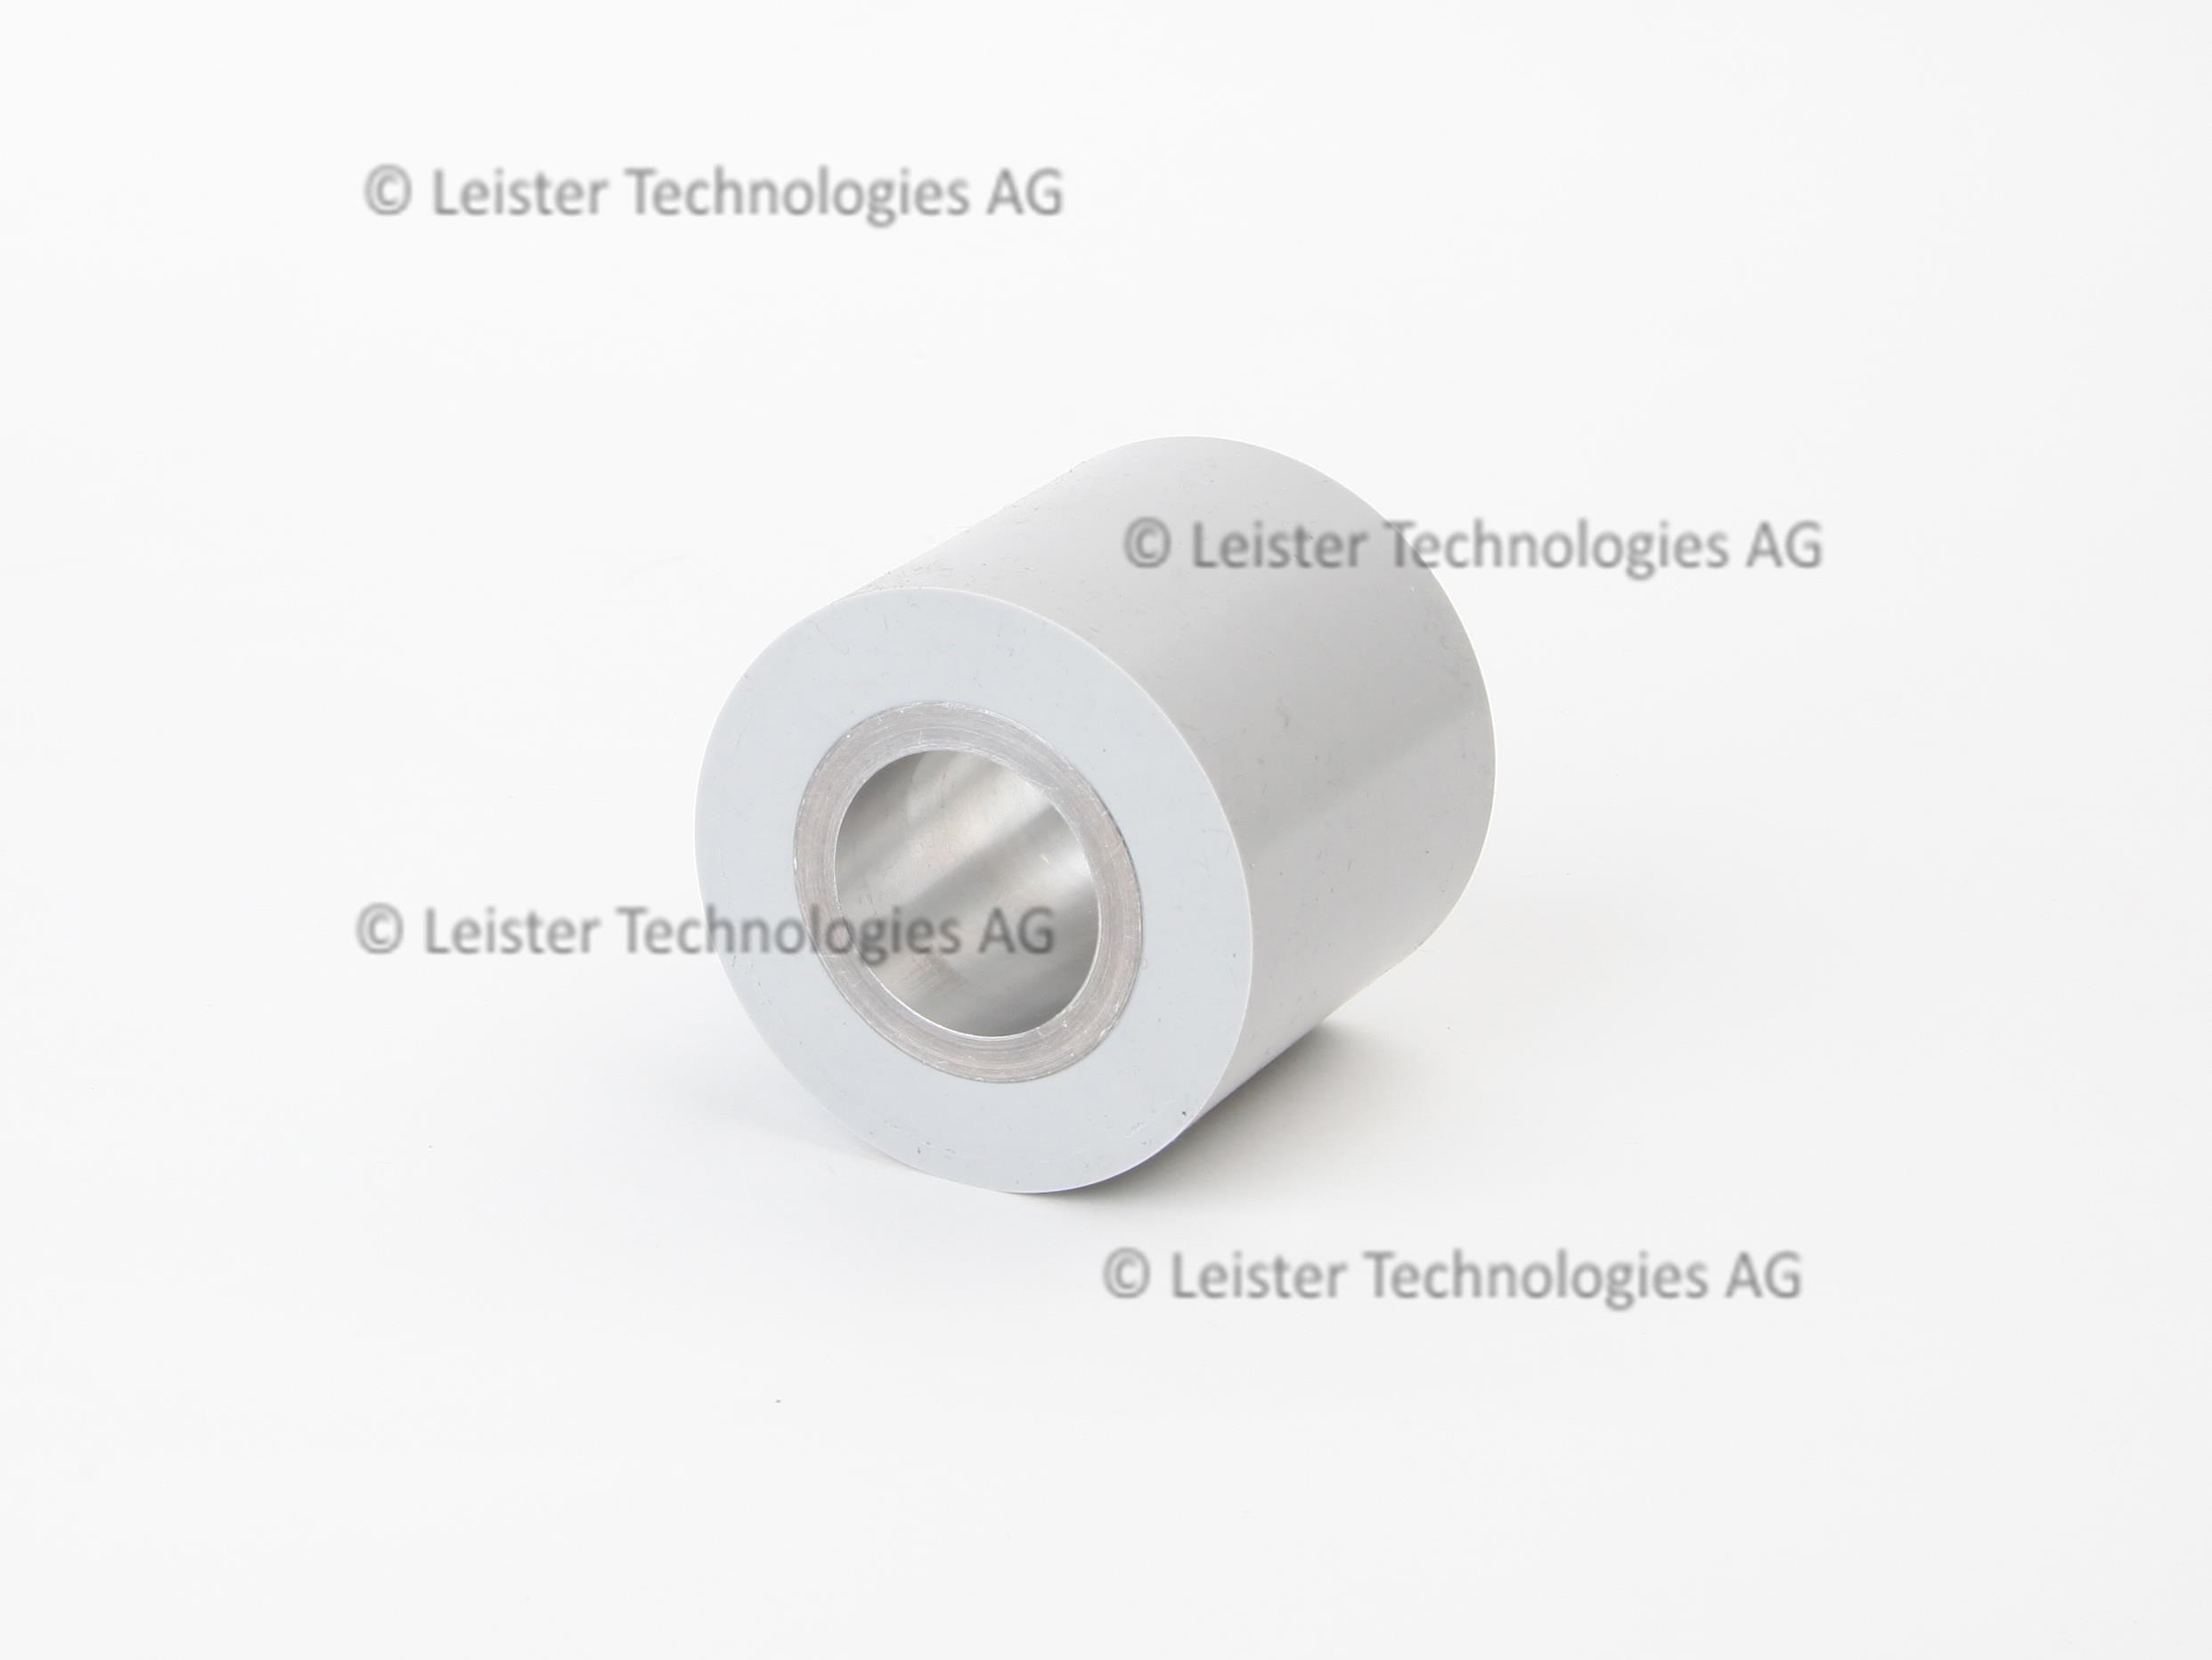 https://leister.azureedge.net/-/media/images/leister_internet/335-ltag-pw-ph-accessories/leister-accessories/andruckrolle/leister_155_405_wheel-silicone.jpg?revision=1a4e3d57-016d-4faa-a537-178c5a94e74b